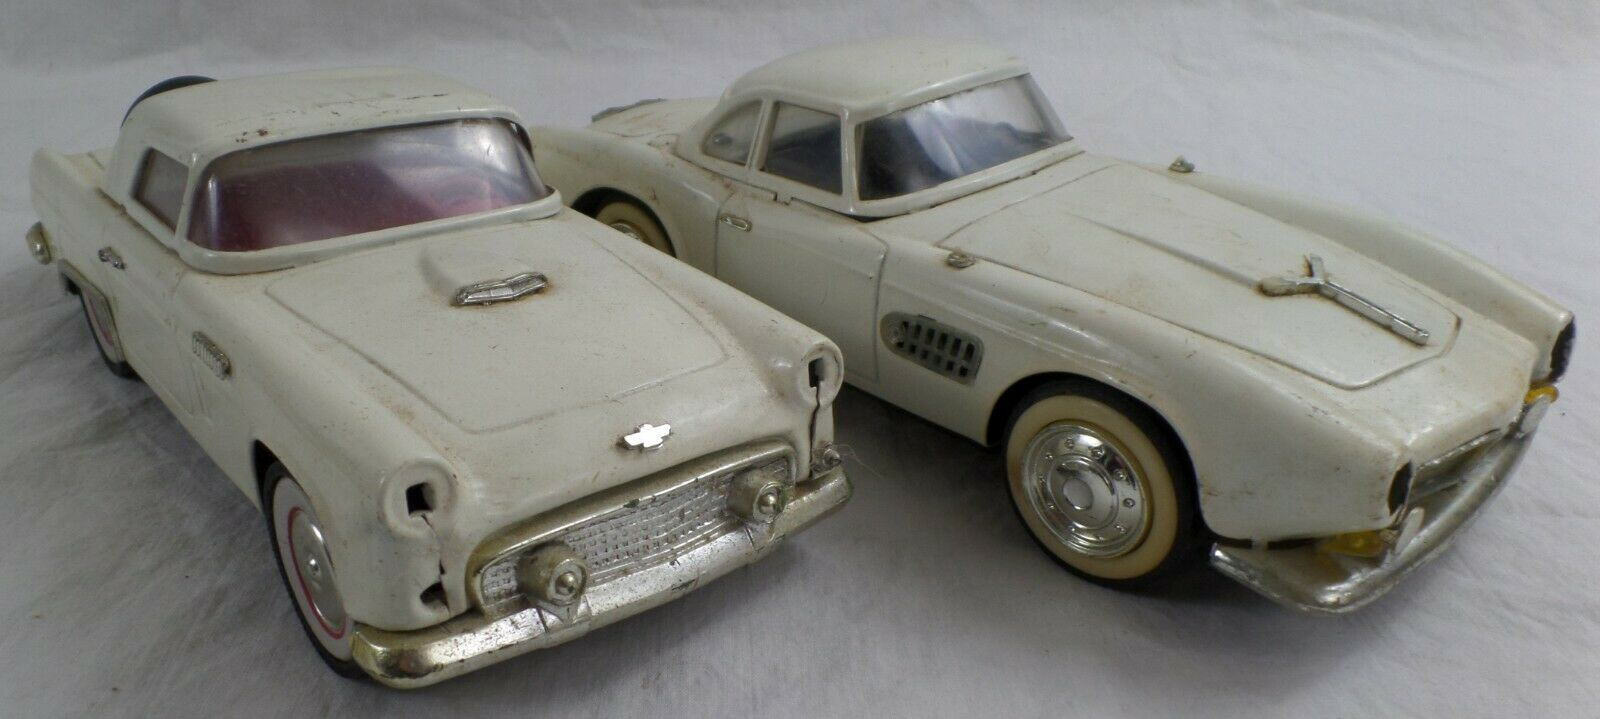 BMW 507 & Vintage Chevy, White Tin Friction Hardtop Model Cars, 1 18th Scale